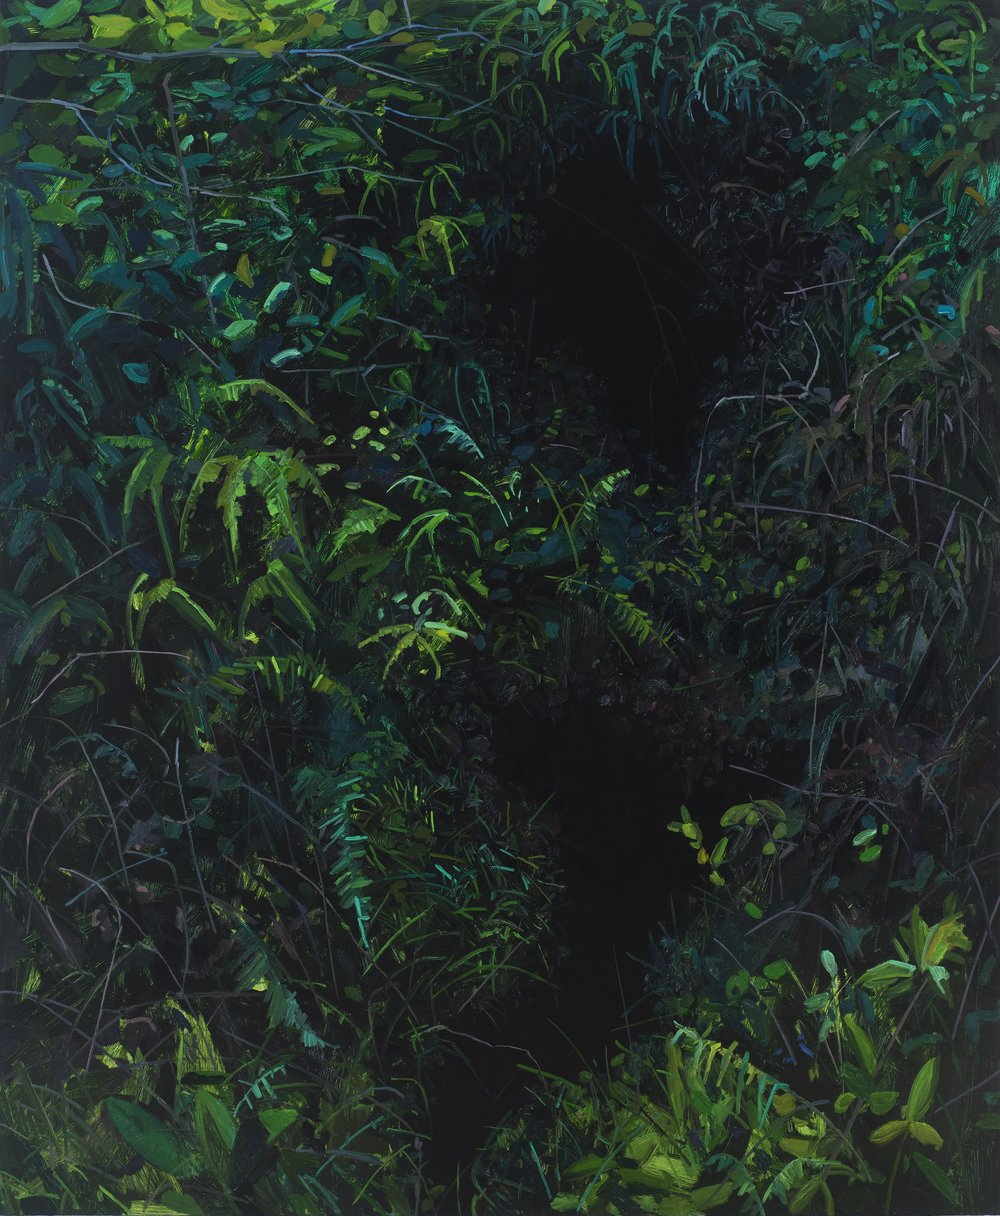 Holes, 2017, Oil on canvas, 72 x 60""